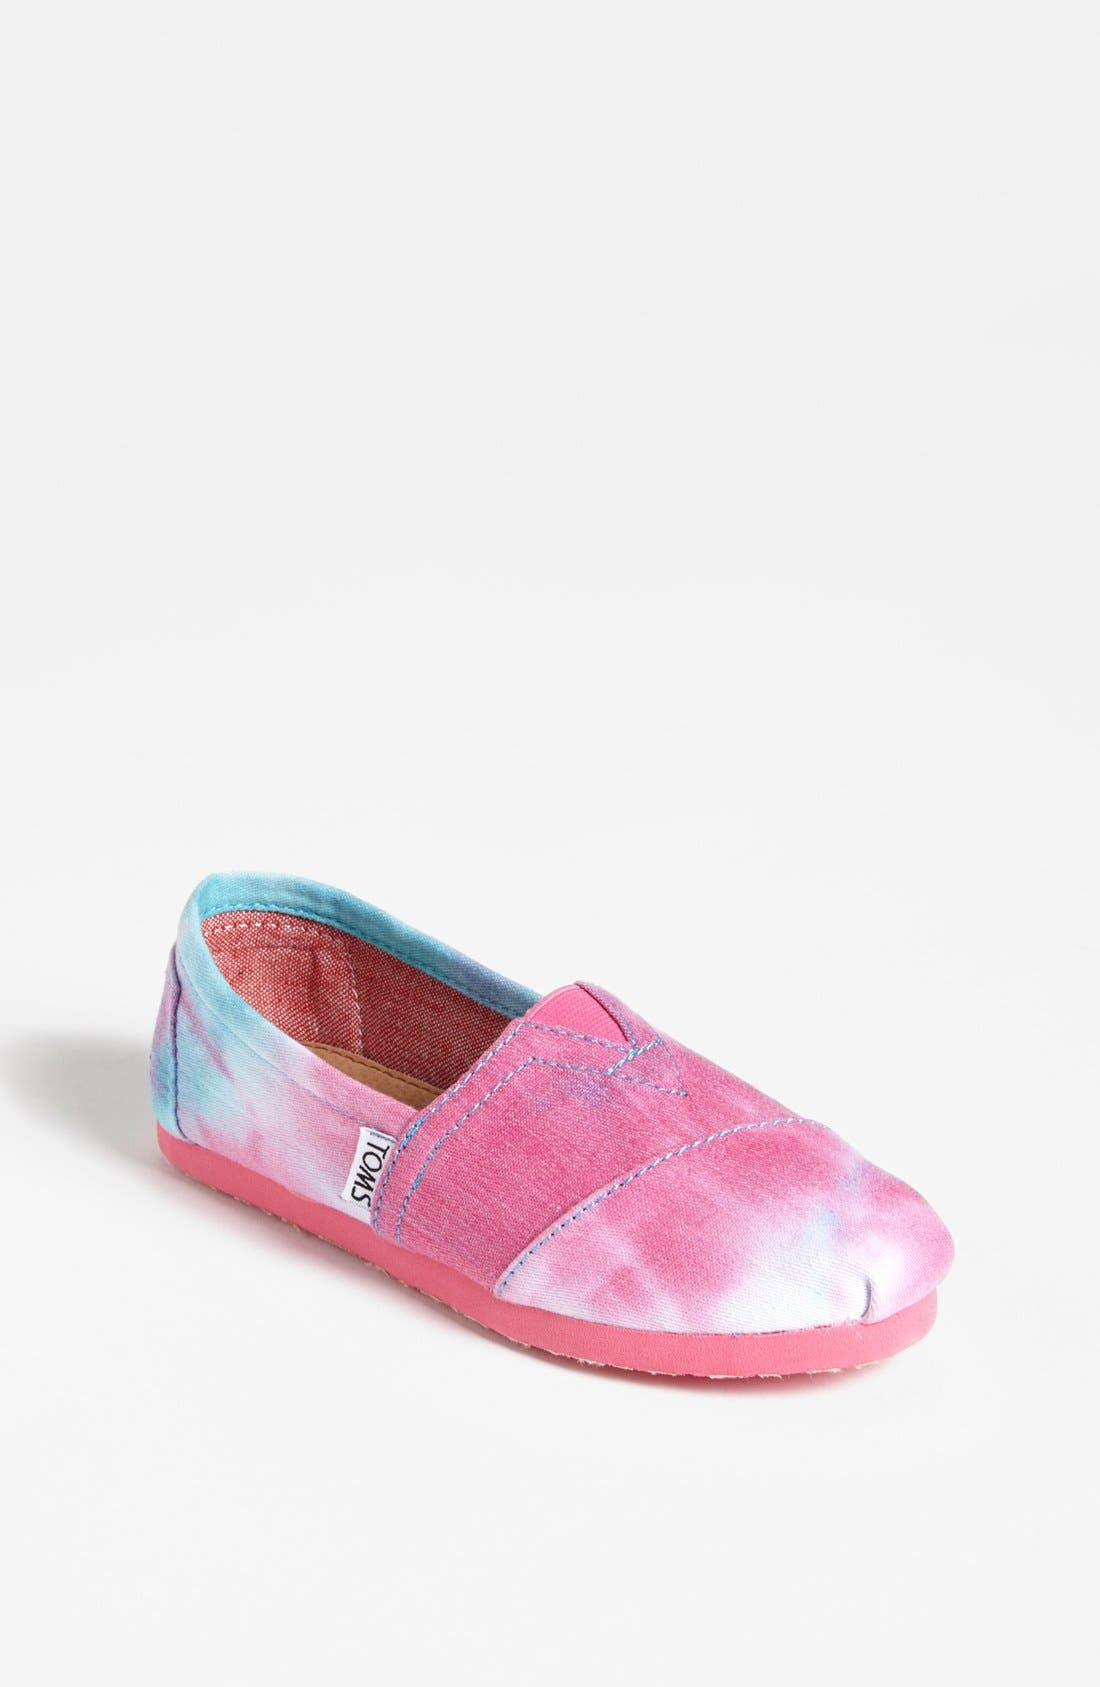 Alternate Image 1 Selected - TOMS 'Classic Youth - Tie Dye' Slip-On (Toddler, Little Kid & Big Kid) (Nordstrom Exclusive)